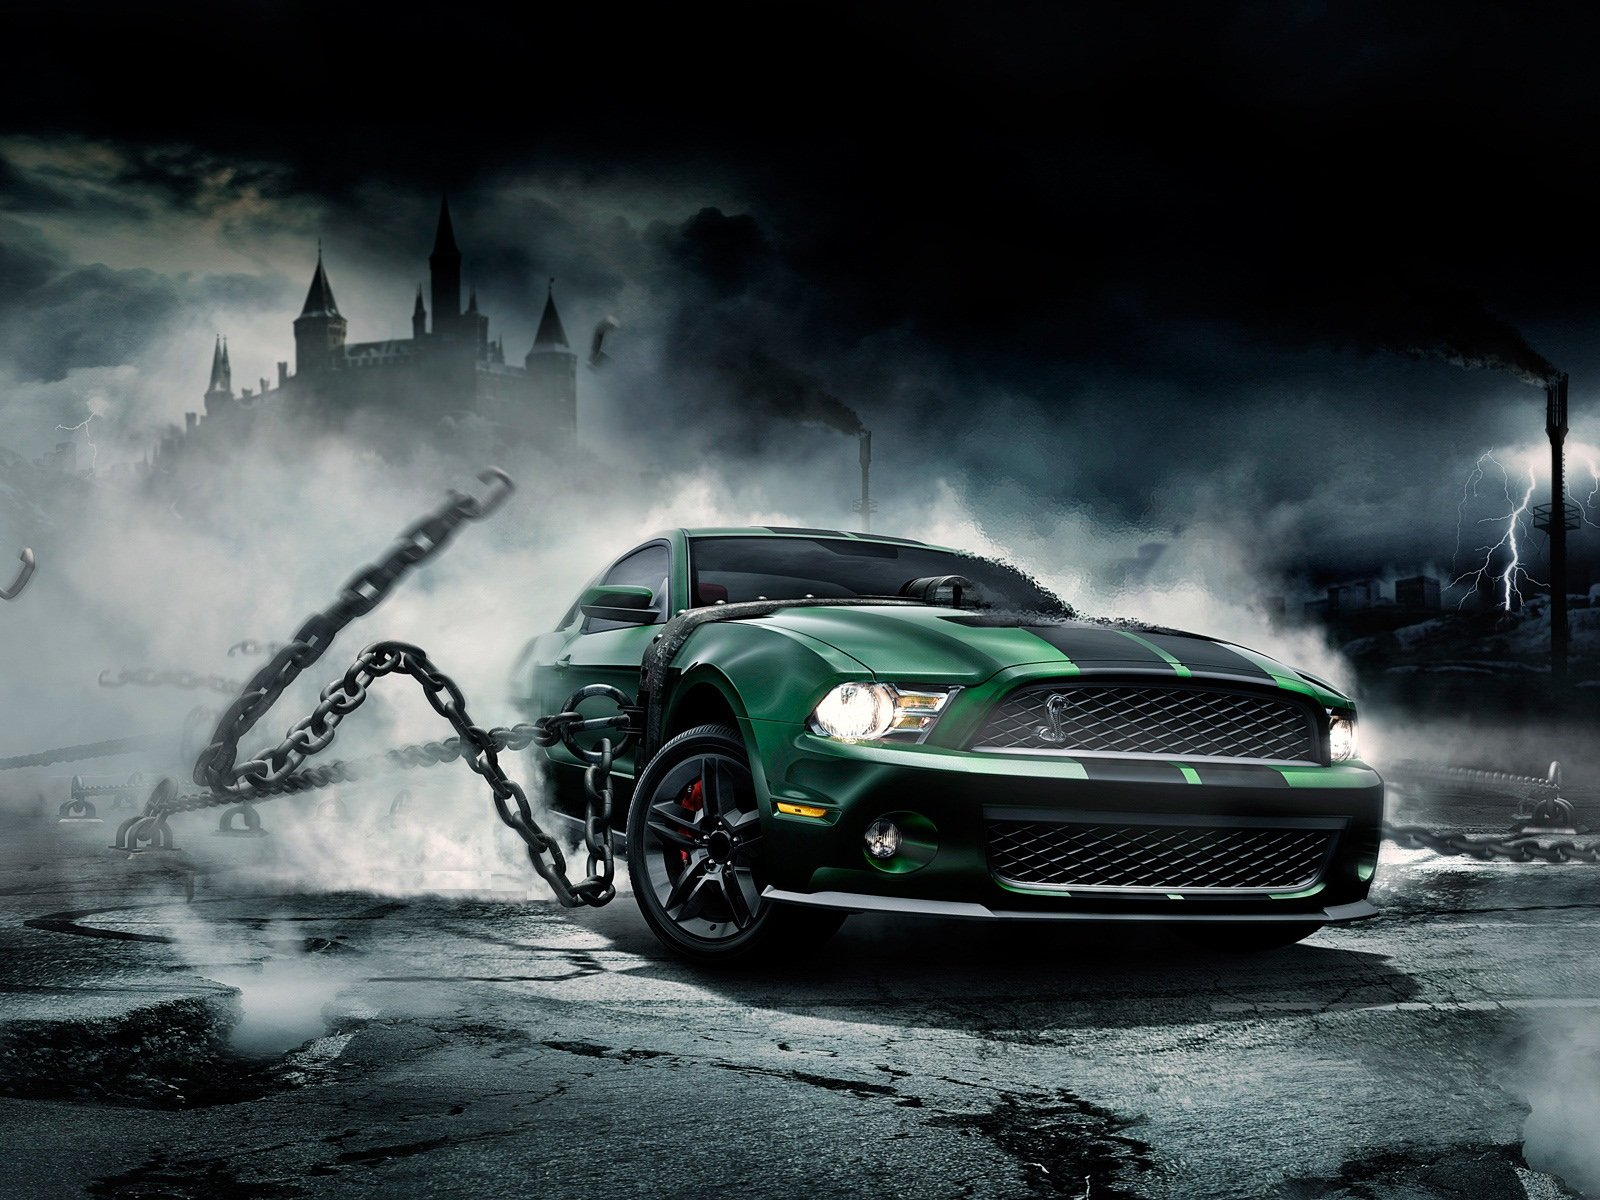 http://2.bp.blogspot.com/-nqEKbJp4kqs/T0r8X0GlQEI/AAAAAAAAAA0/j7uP93HaA3c/s1600/Shelby-unleashed-wallpaper_1600x1200.jpg